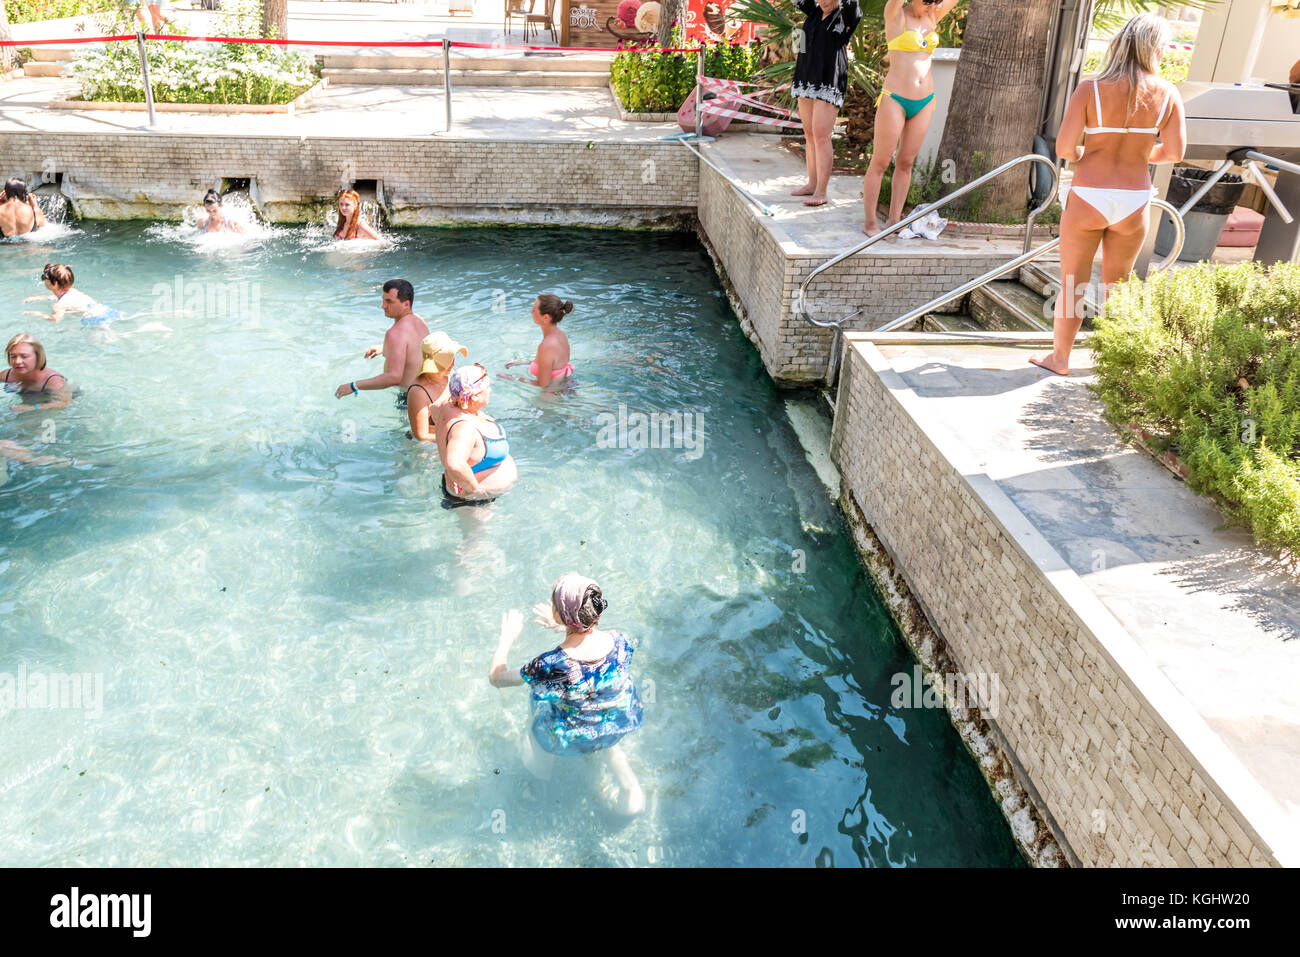 Swimming Pool Antiques : Tourists swimming in cleopatras pool stock photos